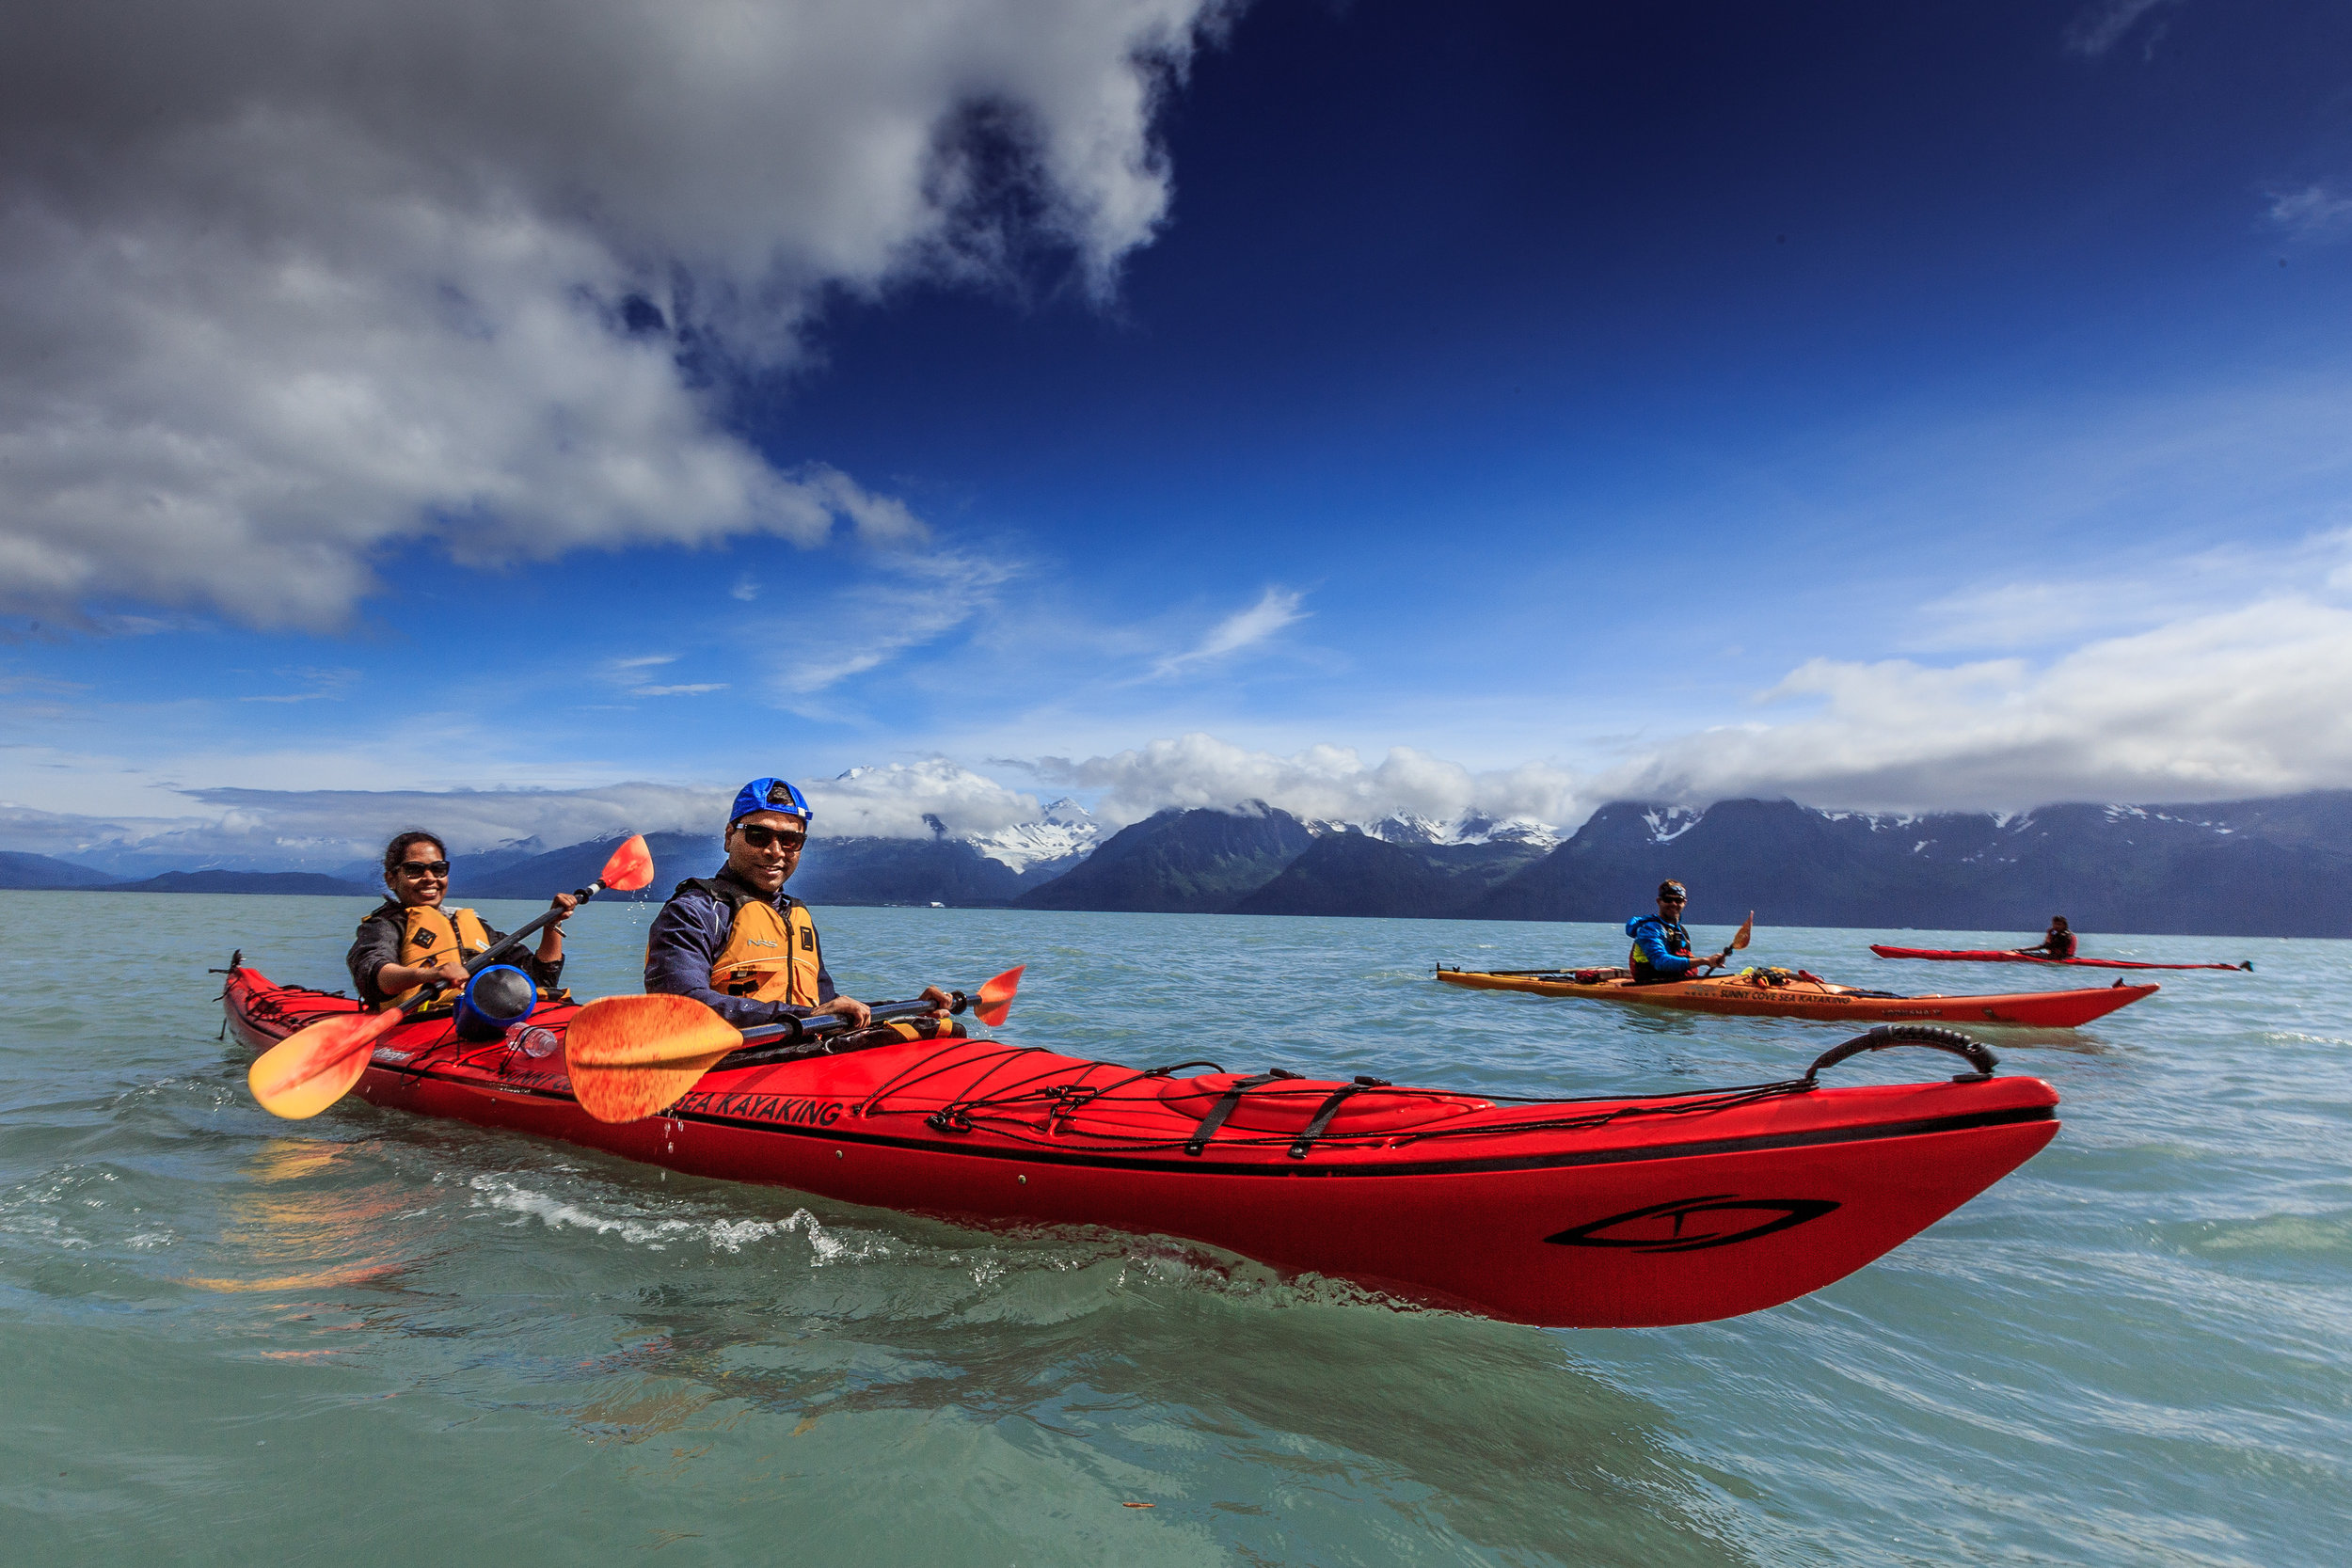 Our stable two-person kayaks are specifically designed for stability on the ocean. At more than 18 feet long, they feel very comfortable and are easy to steer with a foot controlled rudder system, even in a bit of wind waves.